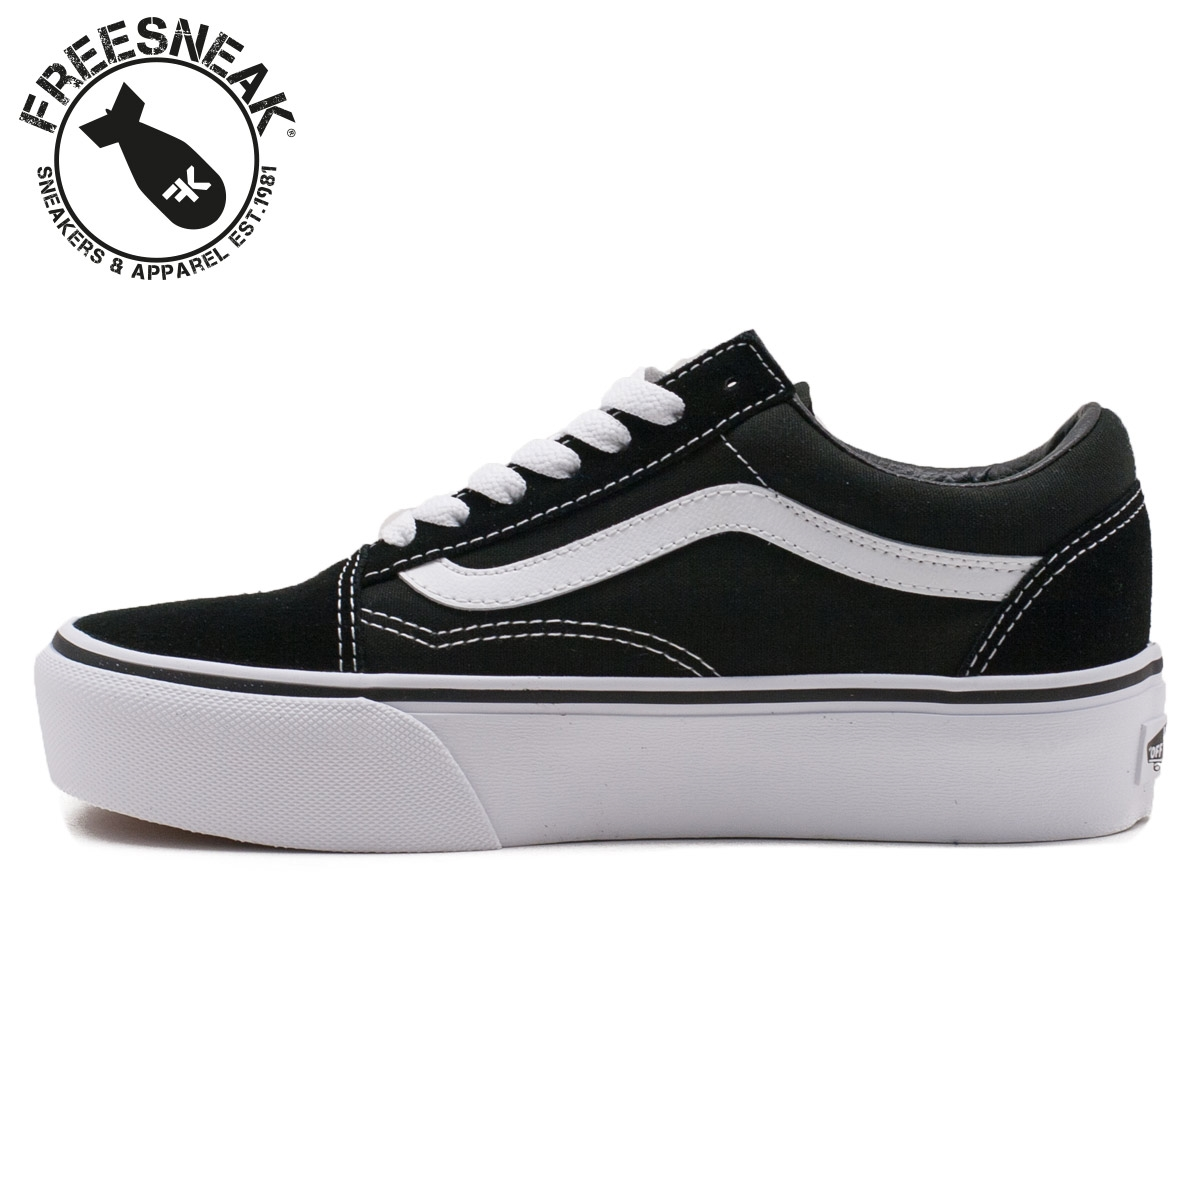 vans old skool nera